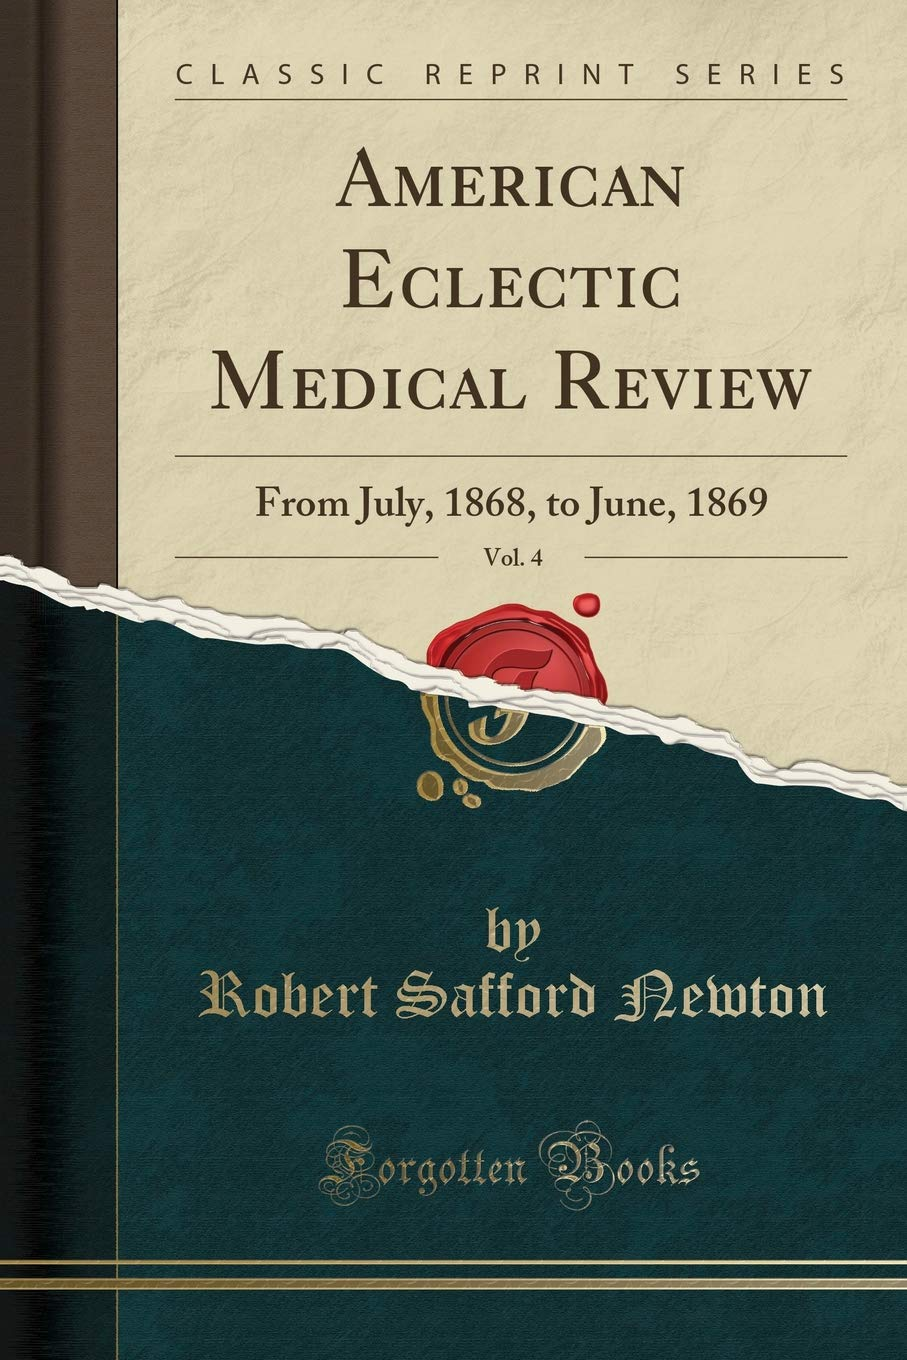 American Eclectic Medical Review, Vol. 4: From July, 1868, to June, 1869 (Classic Reprint) PDF